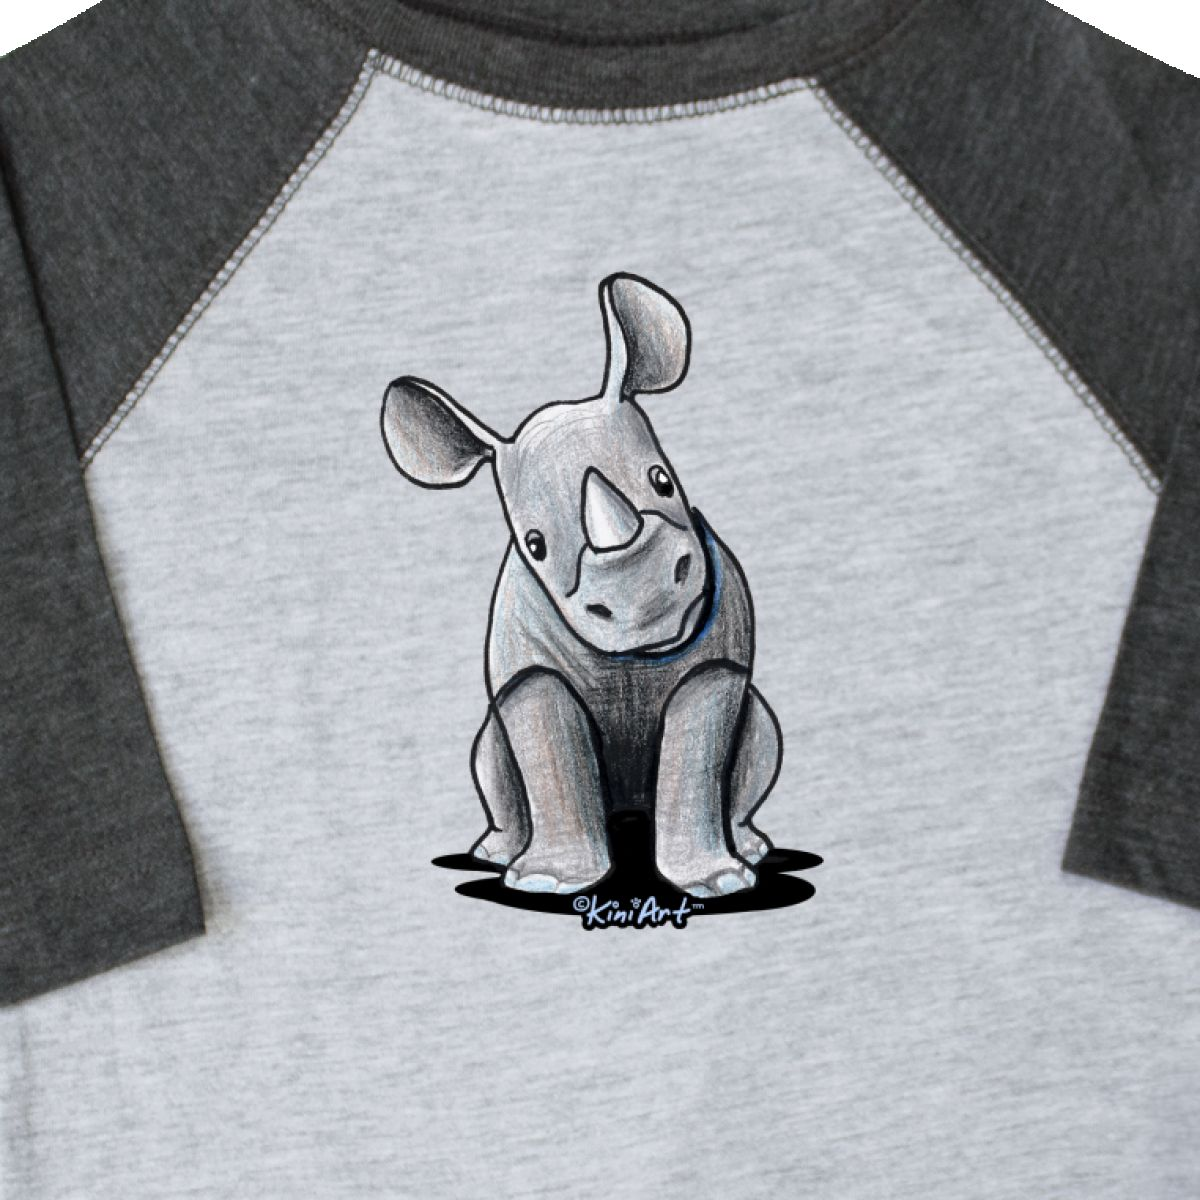 Inktastic-Curious-Rhinos-Toddler-T-Shirt-KiniArt-Rhino-Rhinoceros-Art-Cartoon thumbnail 4